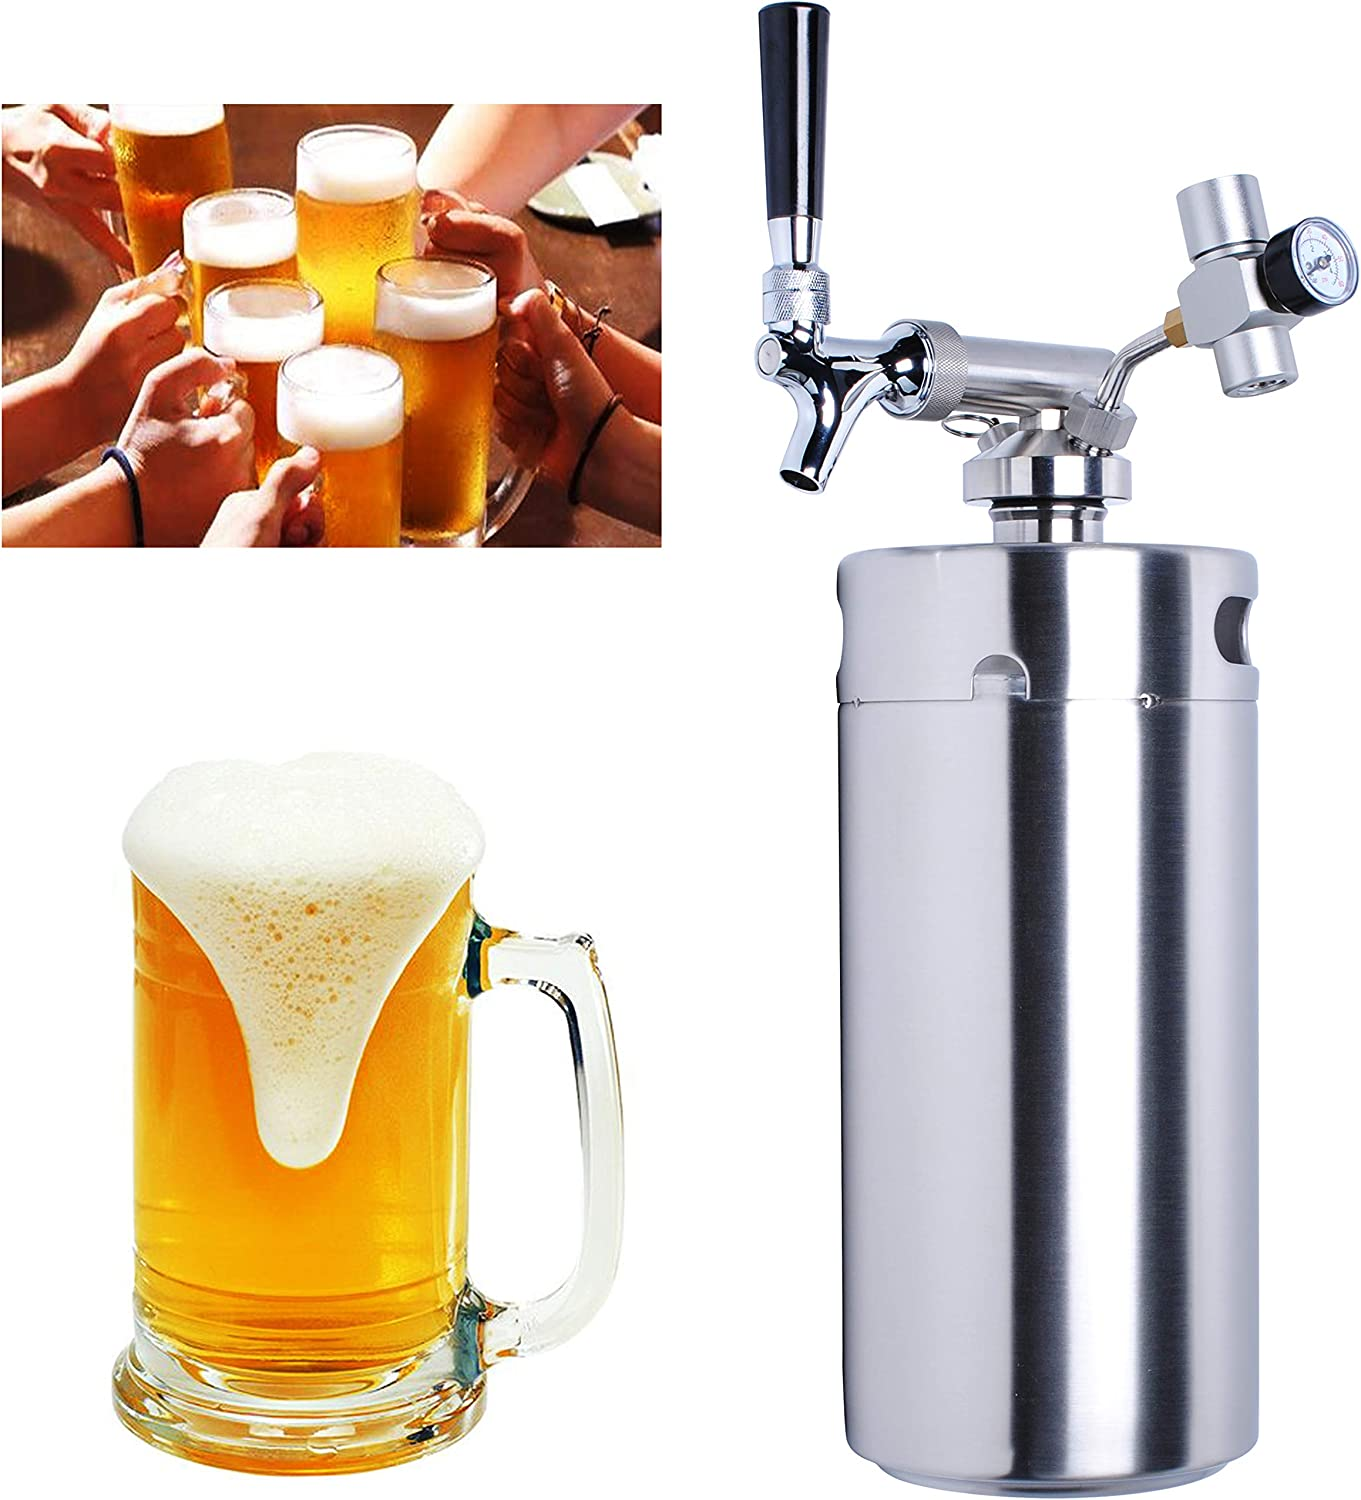 Pressurized Growler Tap System 128oz for Beer by Wadoy - Upgrade Stainless Steel Mini Keg Growler with Co2 Regulator Keeps Fresh and Carbonation for Homebrew, Craft Beer and Draft Beer